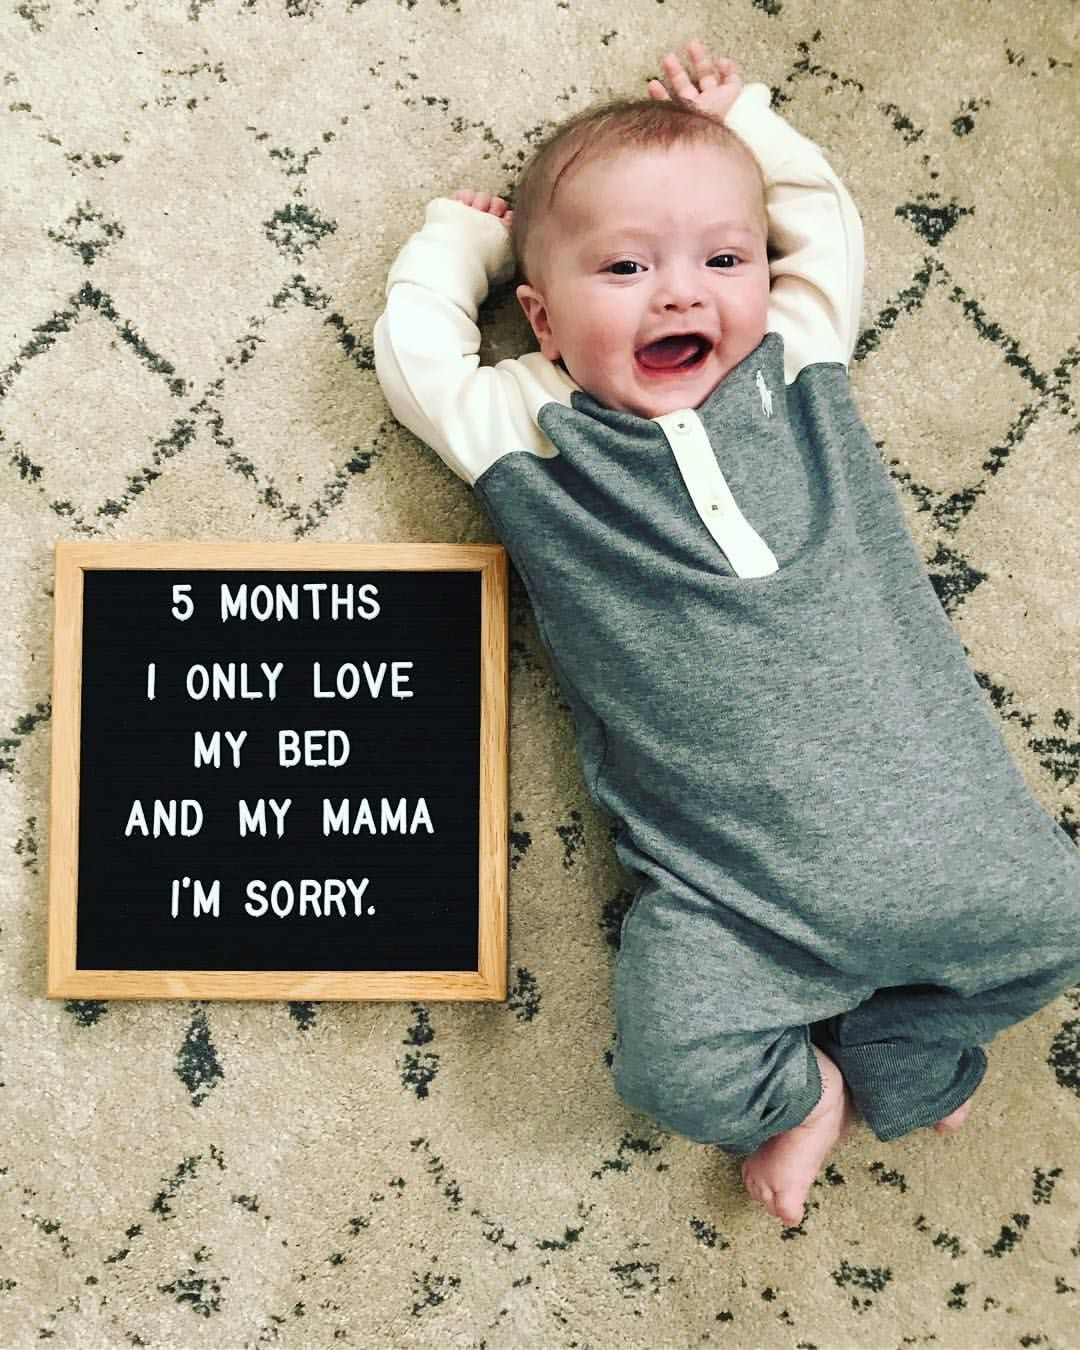 Drake quotes for the letter board 😂 Baby milestones